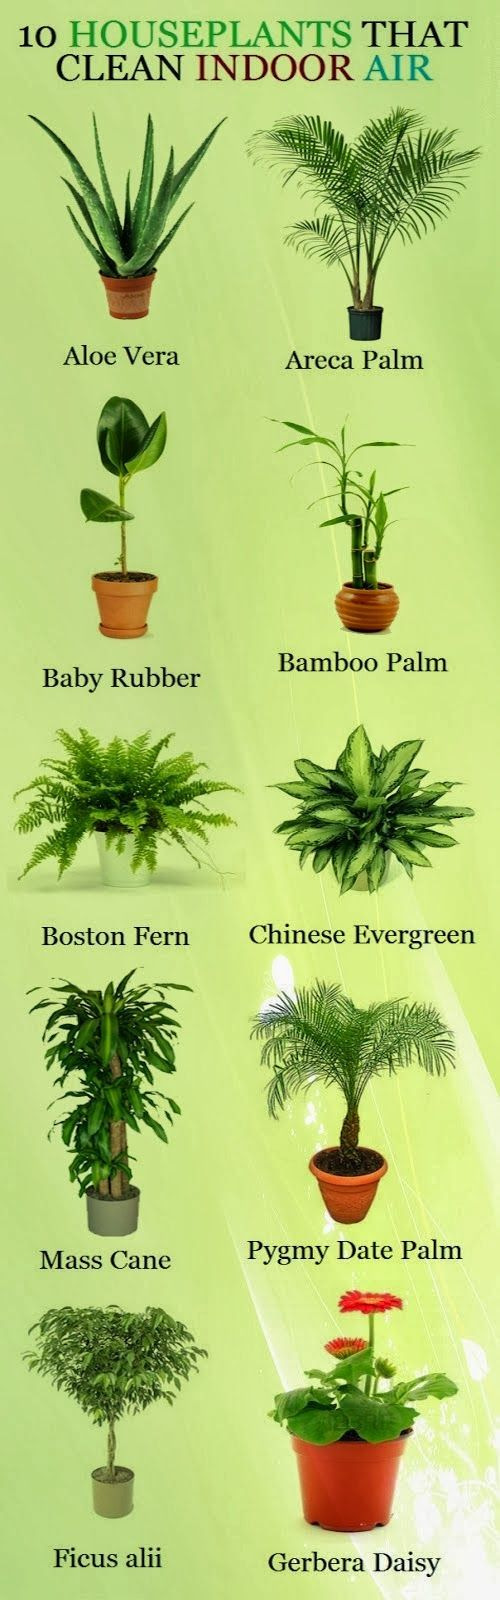 Ten Houseplants That Clean Indoor Air